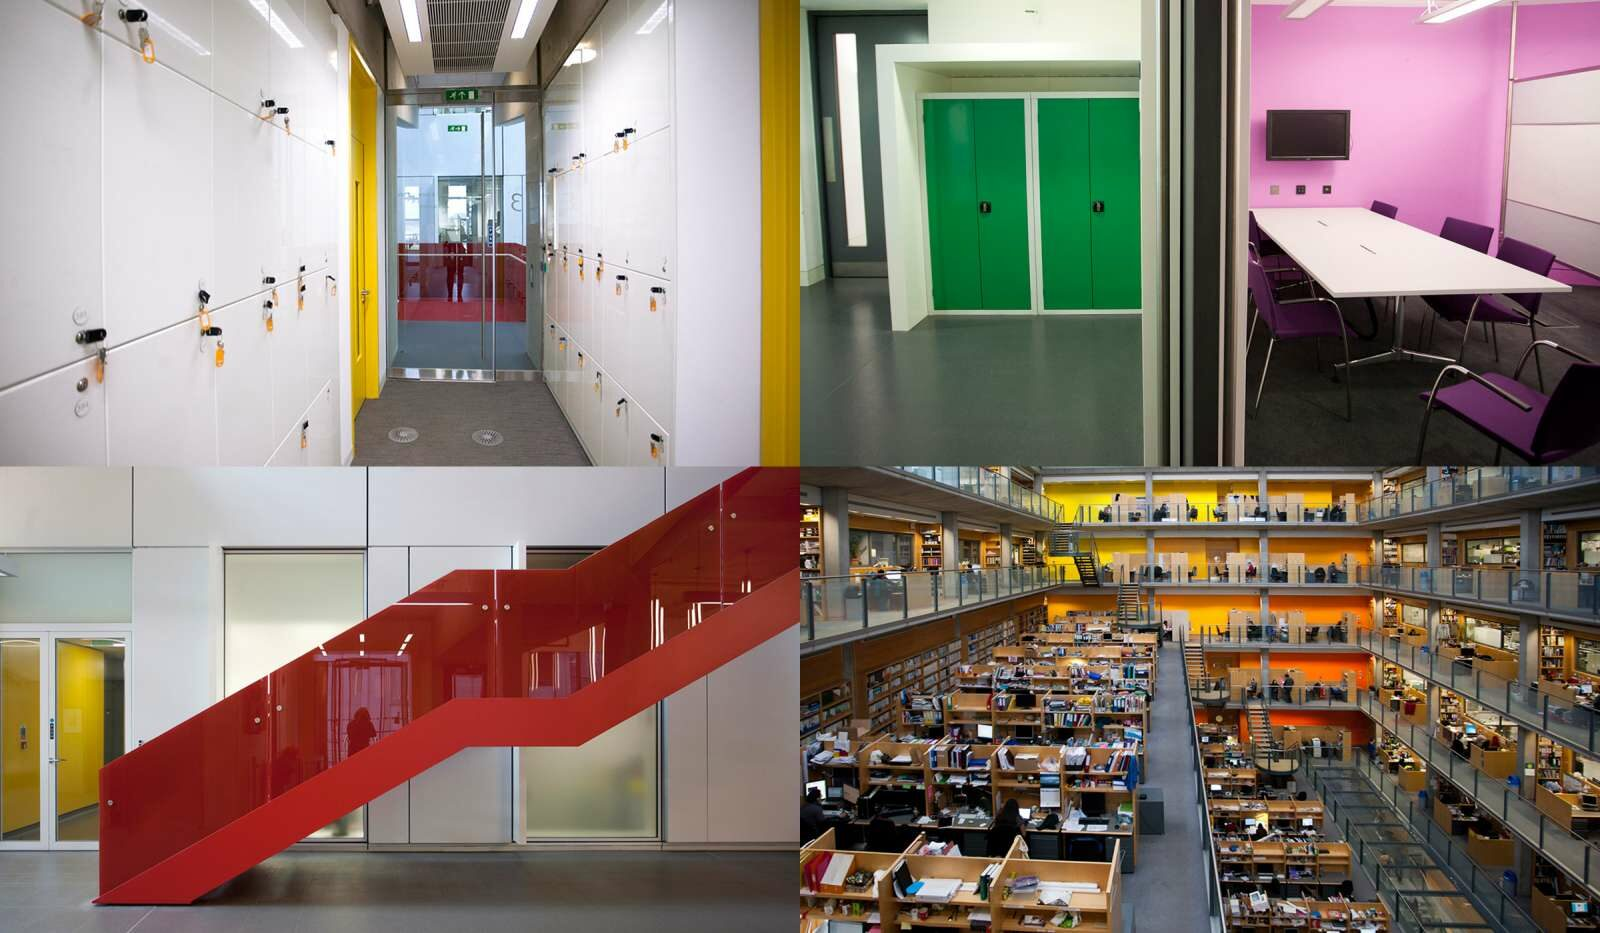 Collage of the interior of the Imperial College London campus